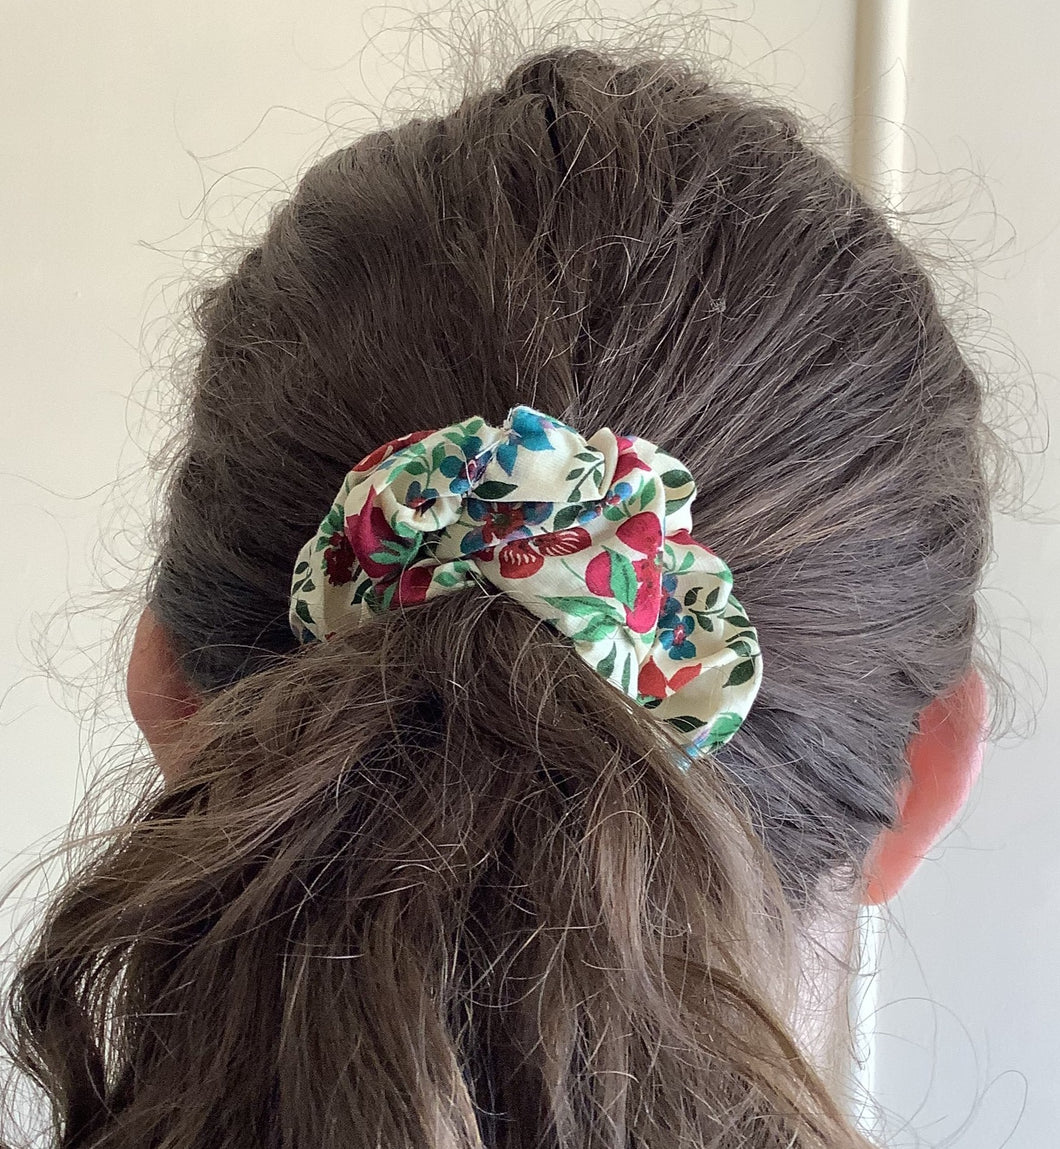 Hair Accessory - Scrunchie - vibrant floral